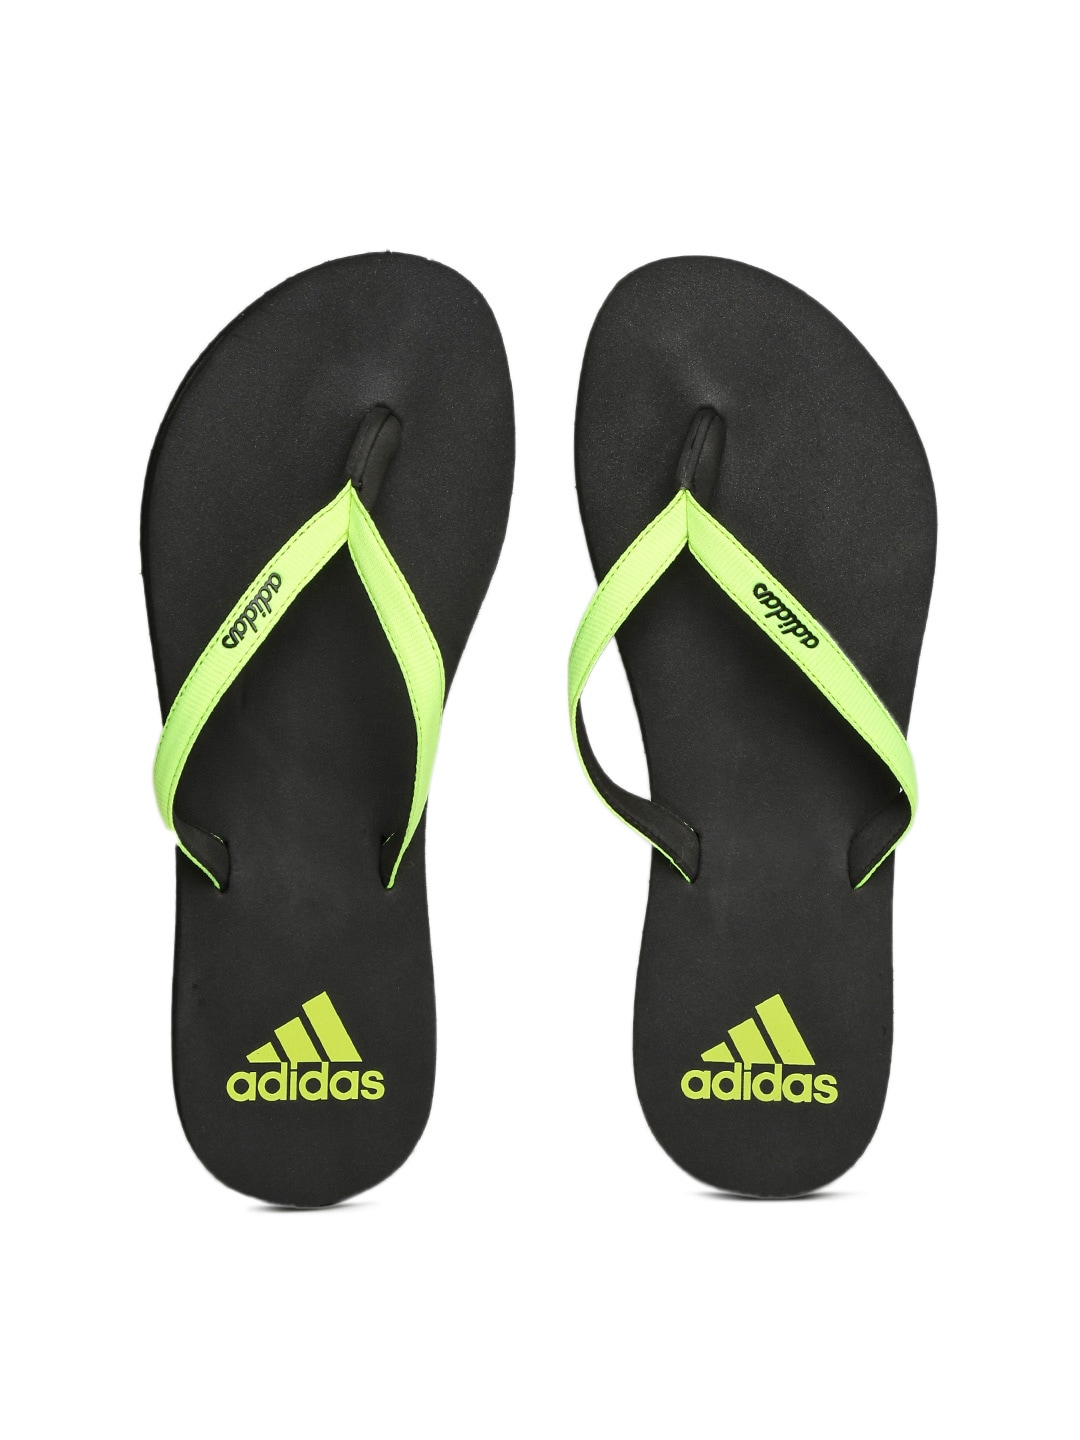 45f7d6f30 Adidas bh7088 Women Fluorescent Green And Black Eezay Max Out Flip Flops-  Price in India